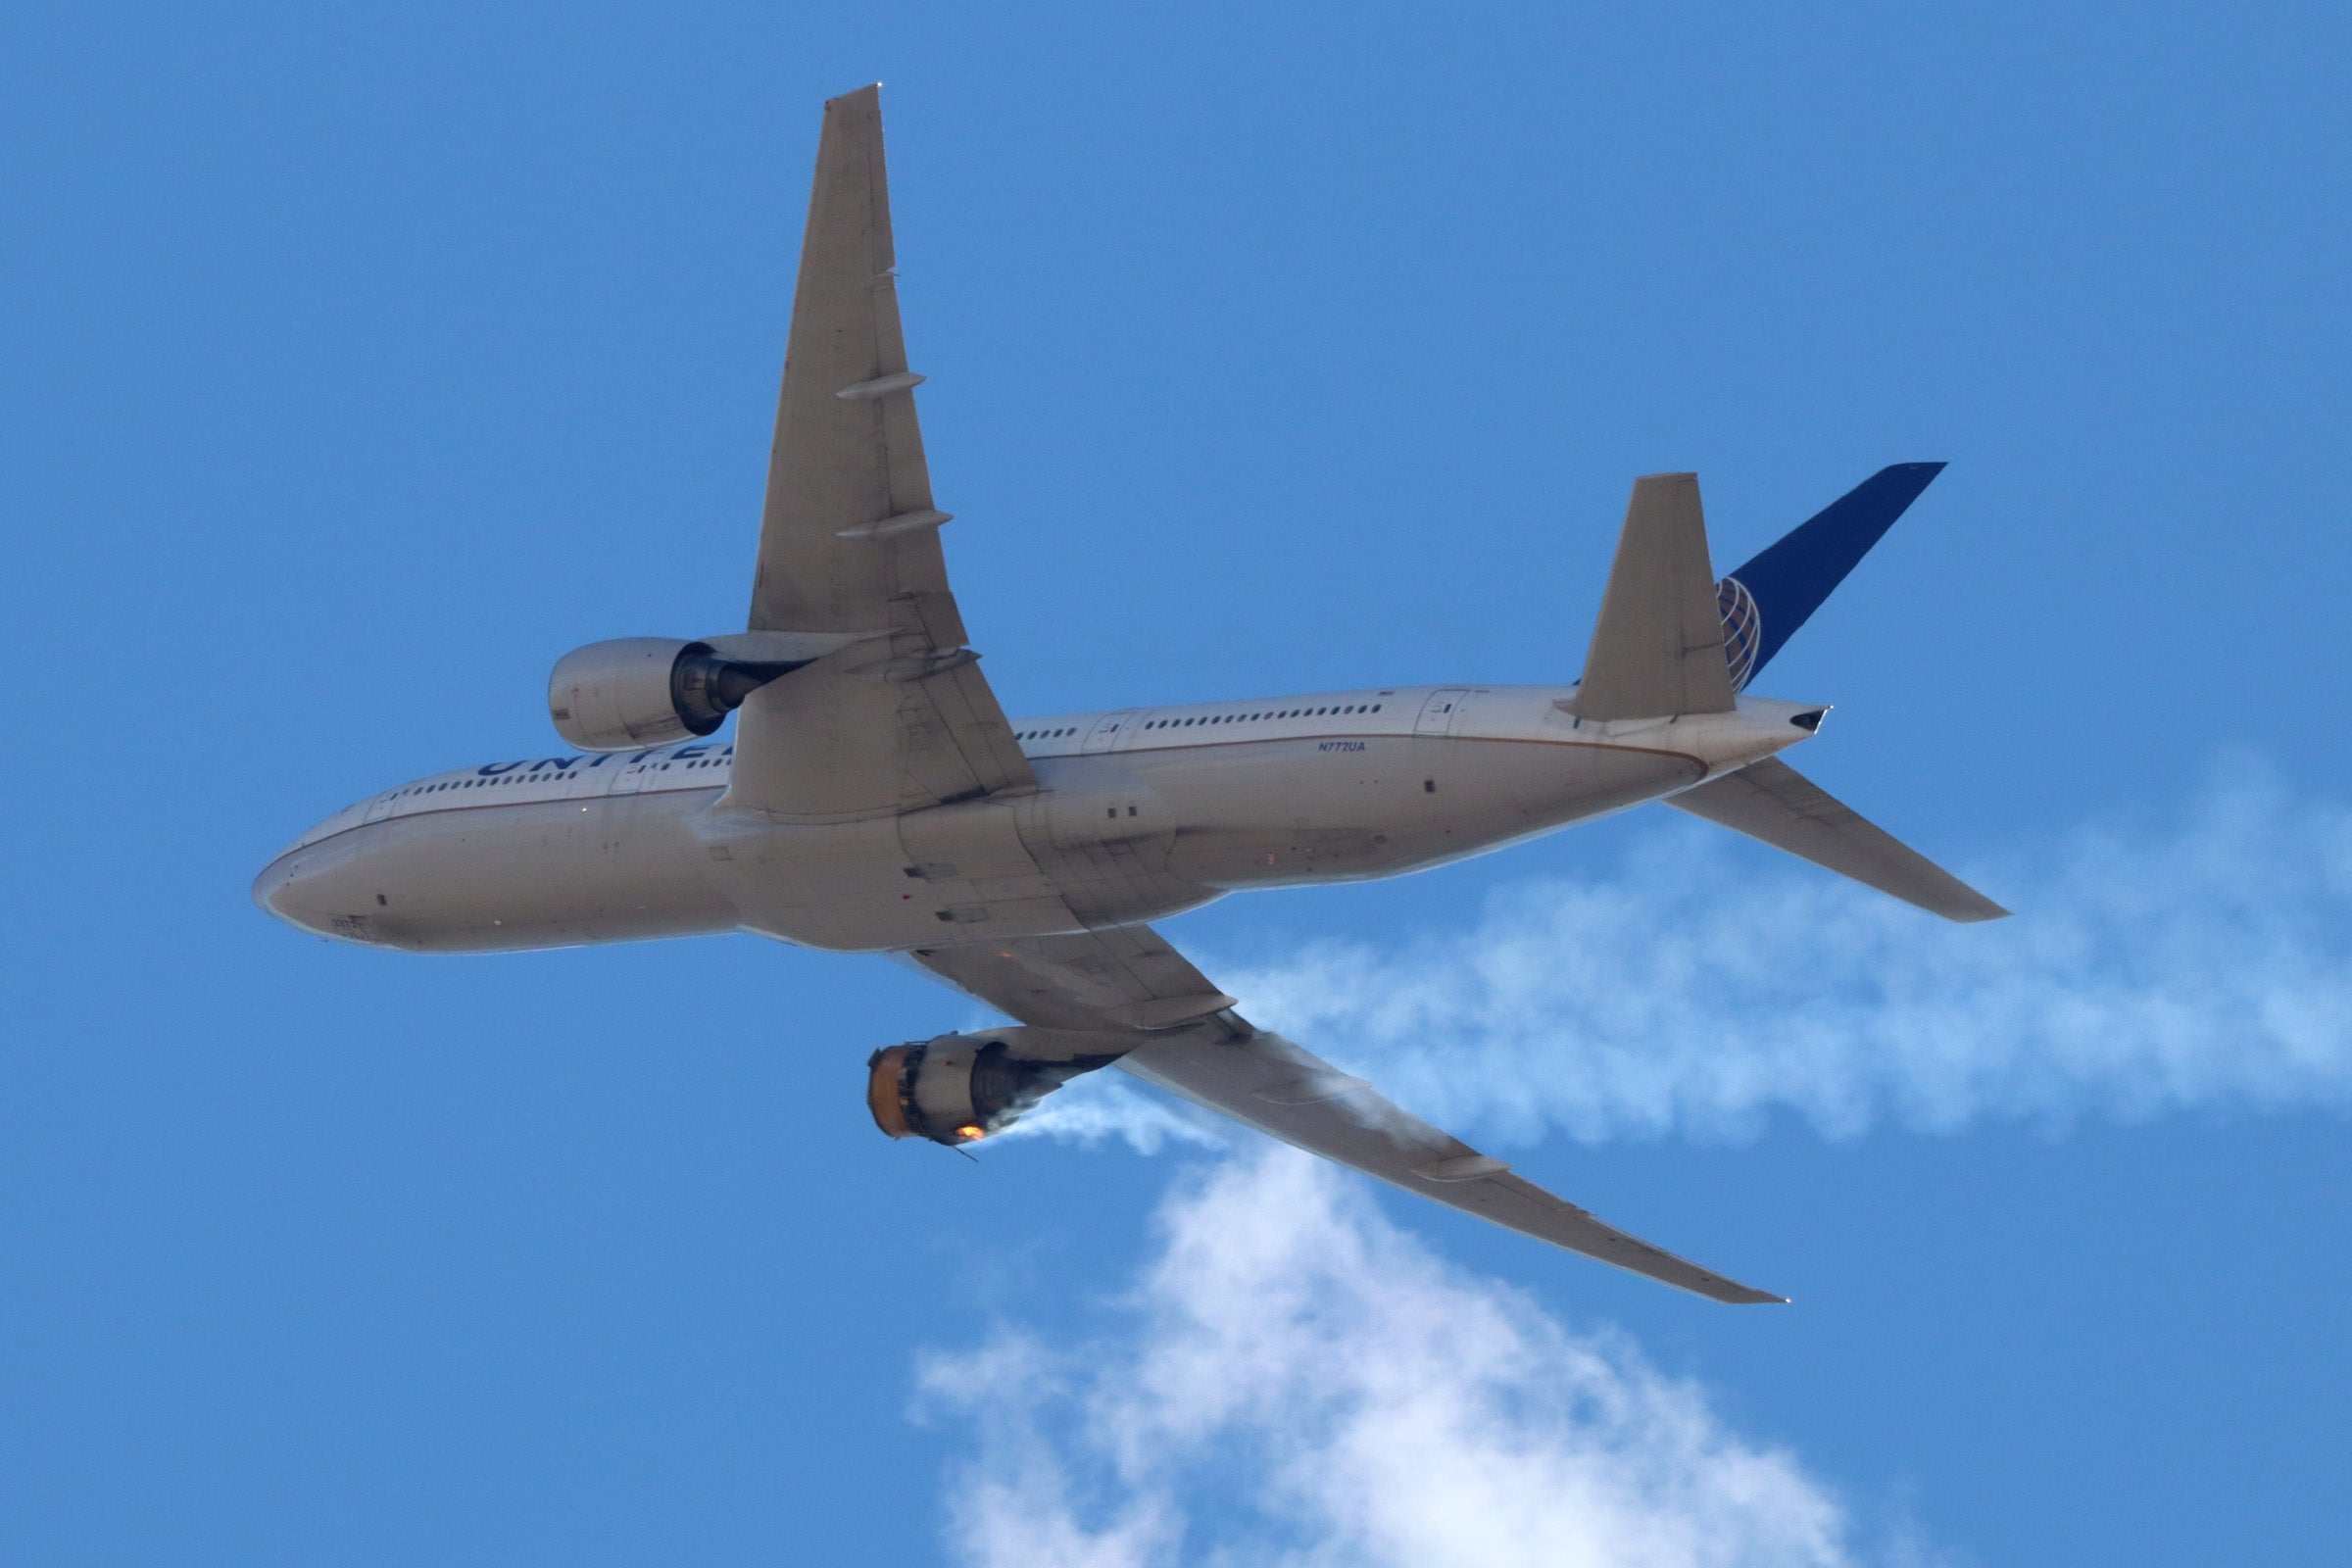 FAA issues airworthiness directive following United engine failure